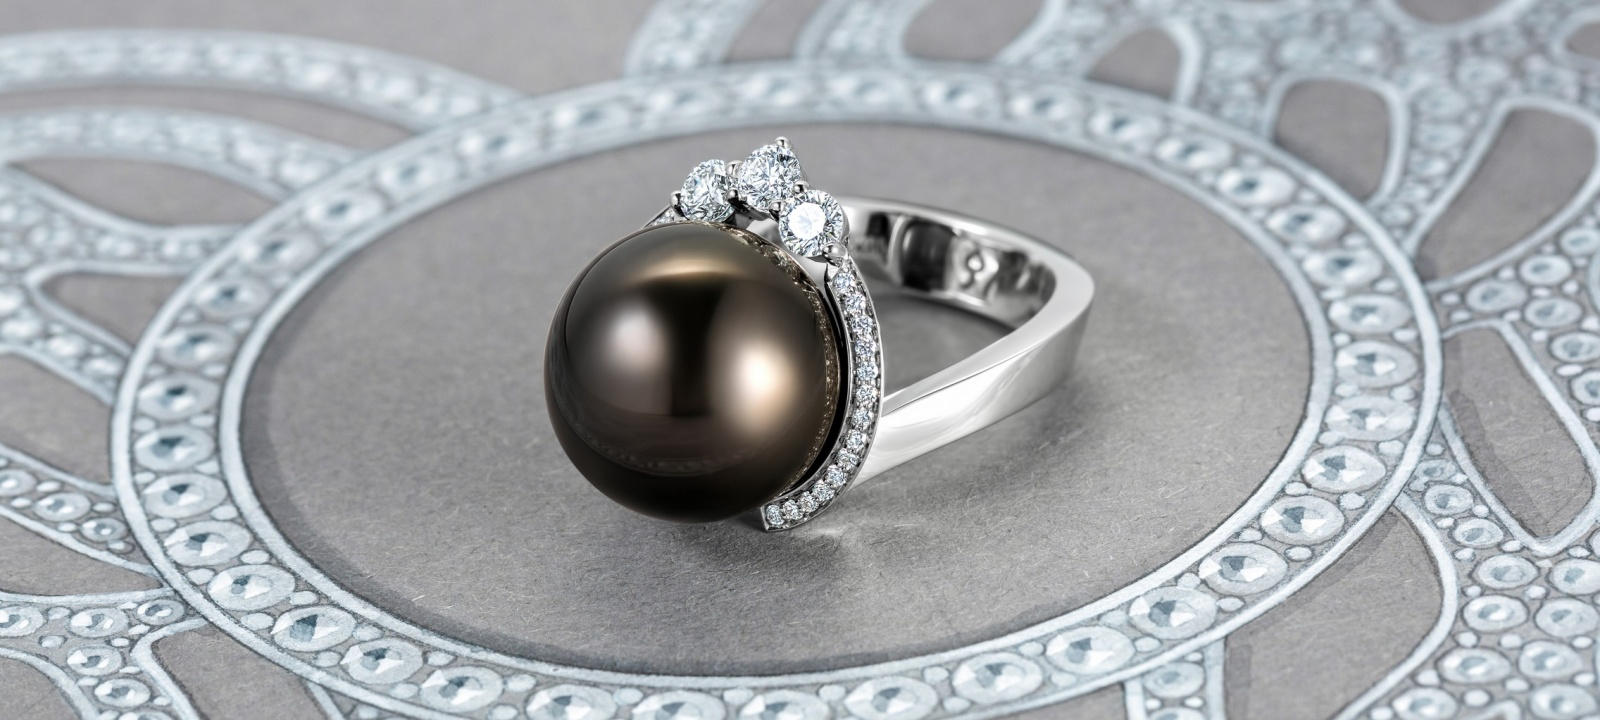 Podnebesnaya and Podnebesny. Pearls and gems ring